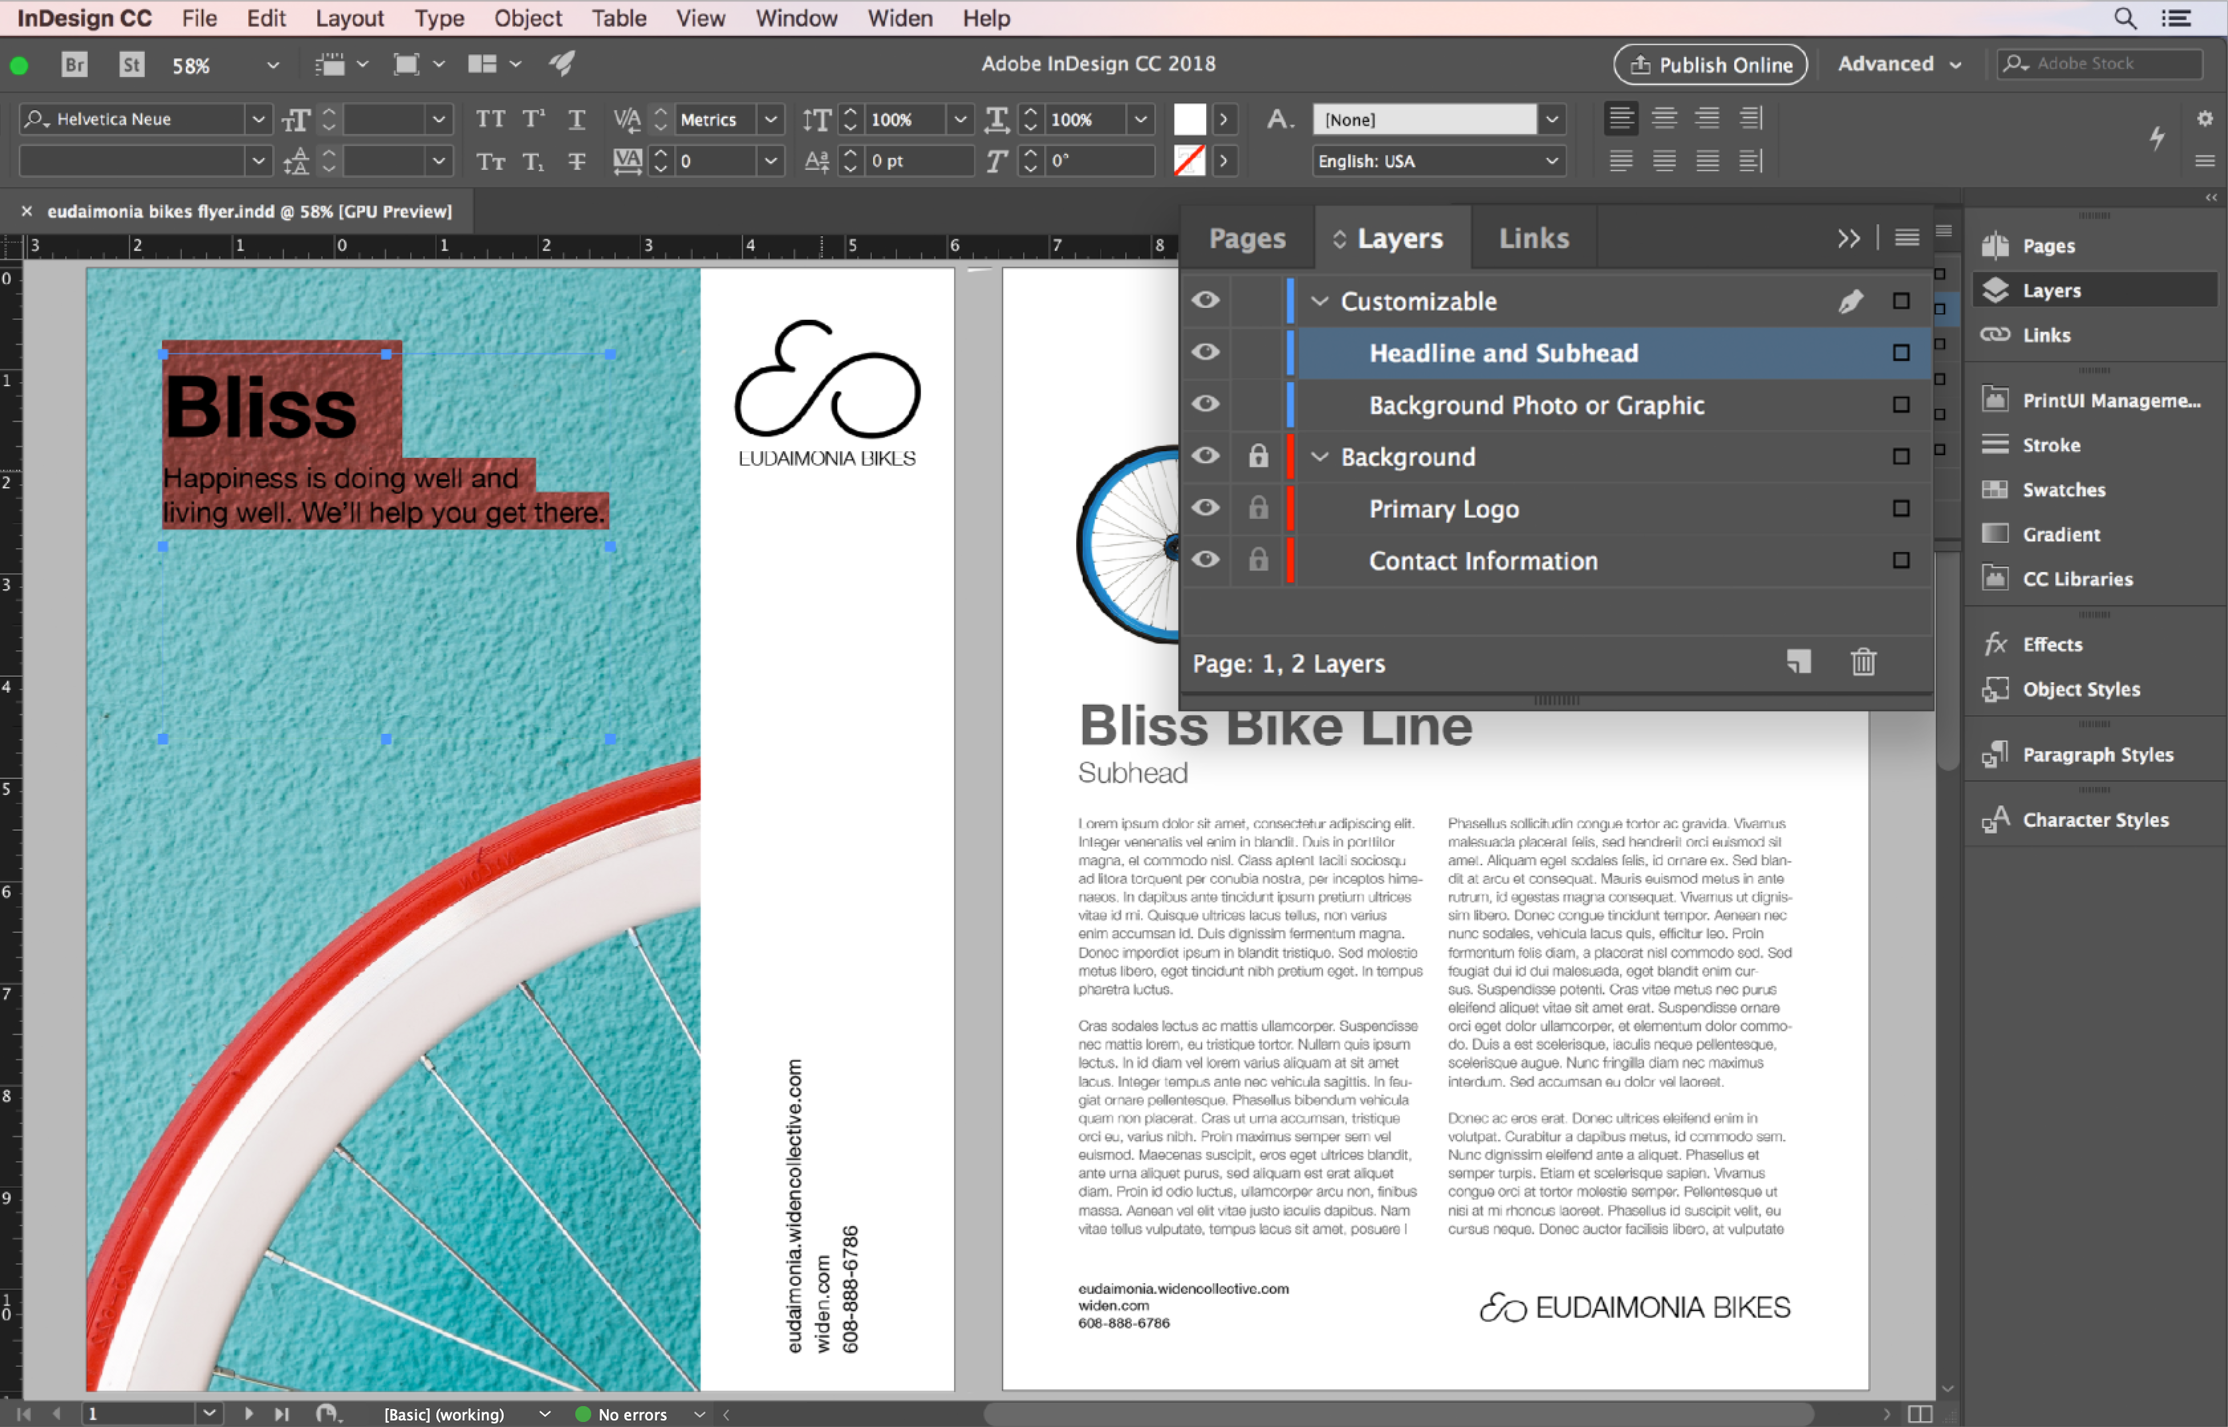 A look at creating a layout for Widen Templates in Adobe InDesign.